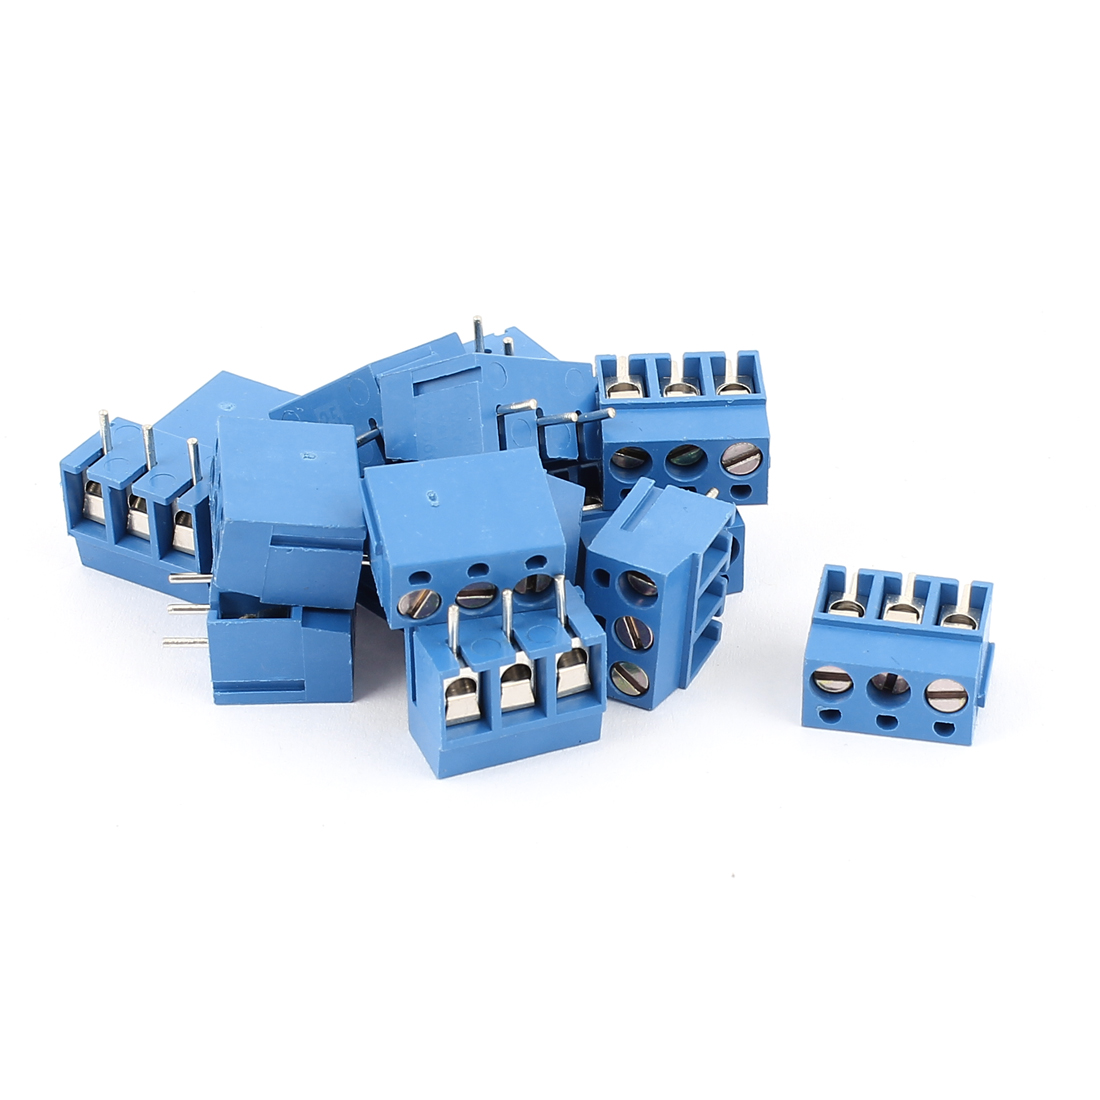 15pcs 3 Way 5mm Spacing Pluggable PCB Screw Terminal Barrier Block Connector for 14-22AWG Wire